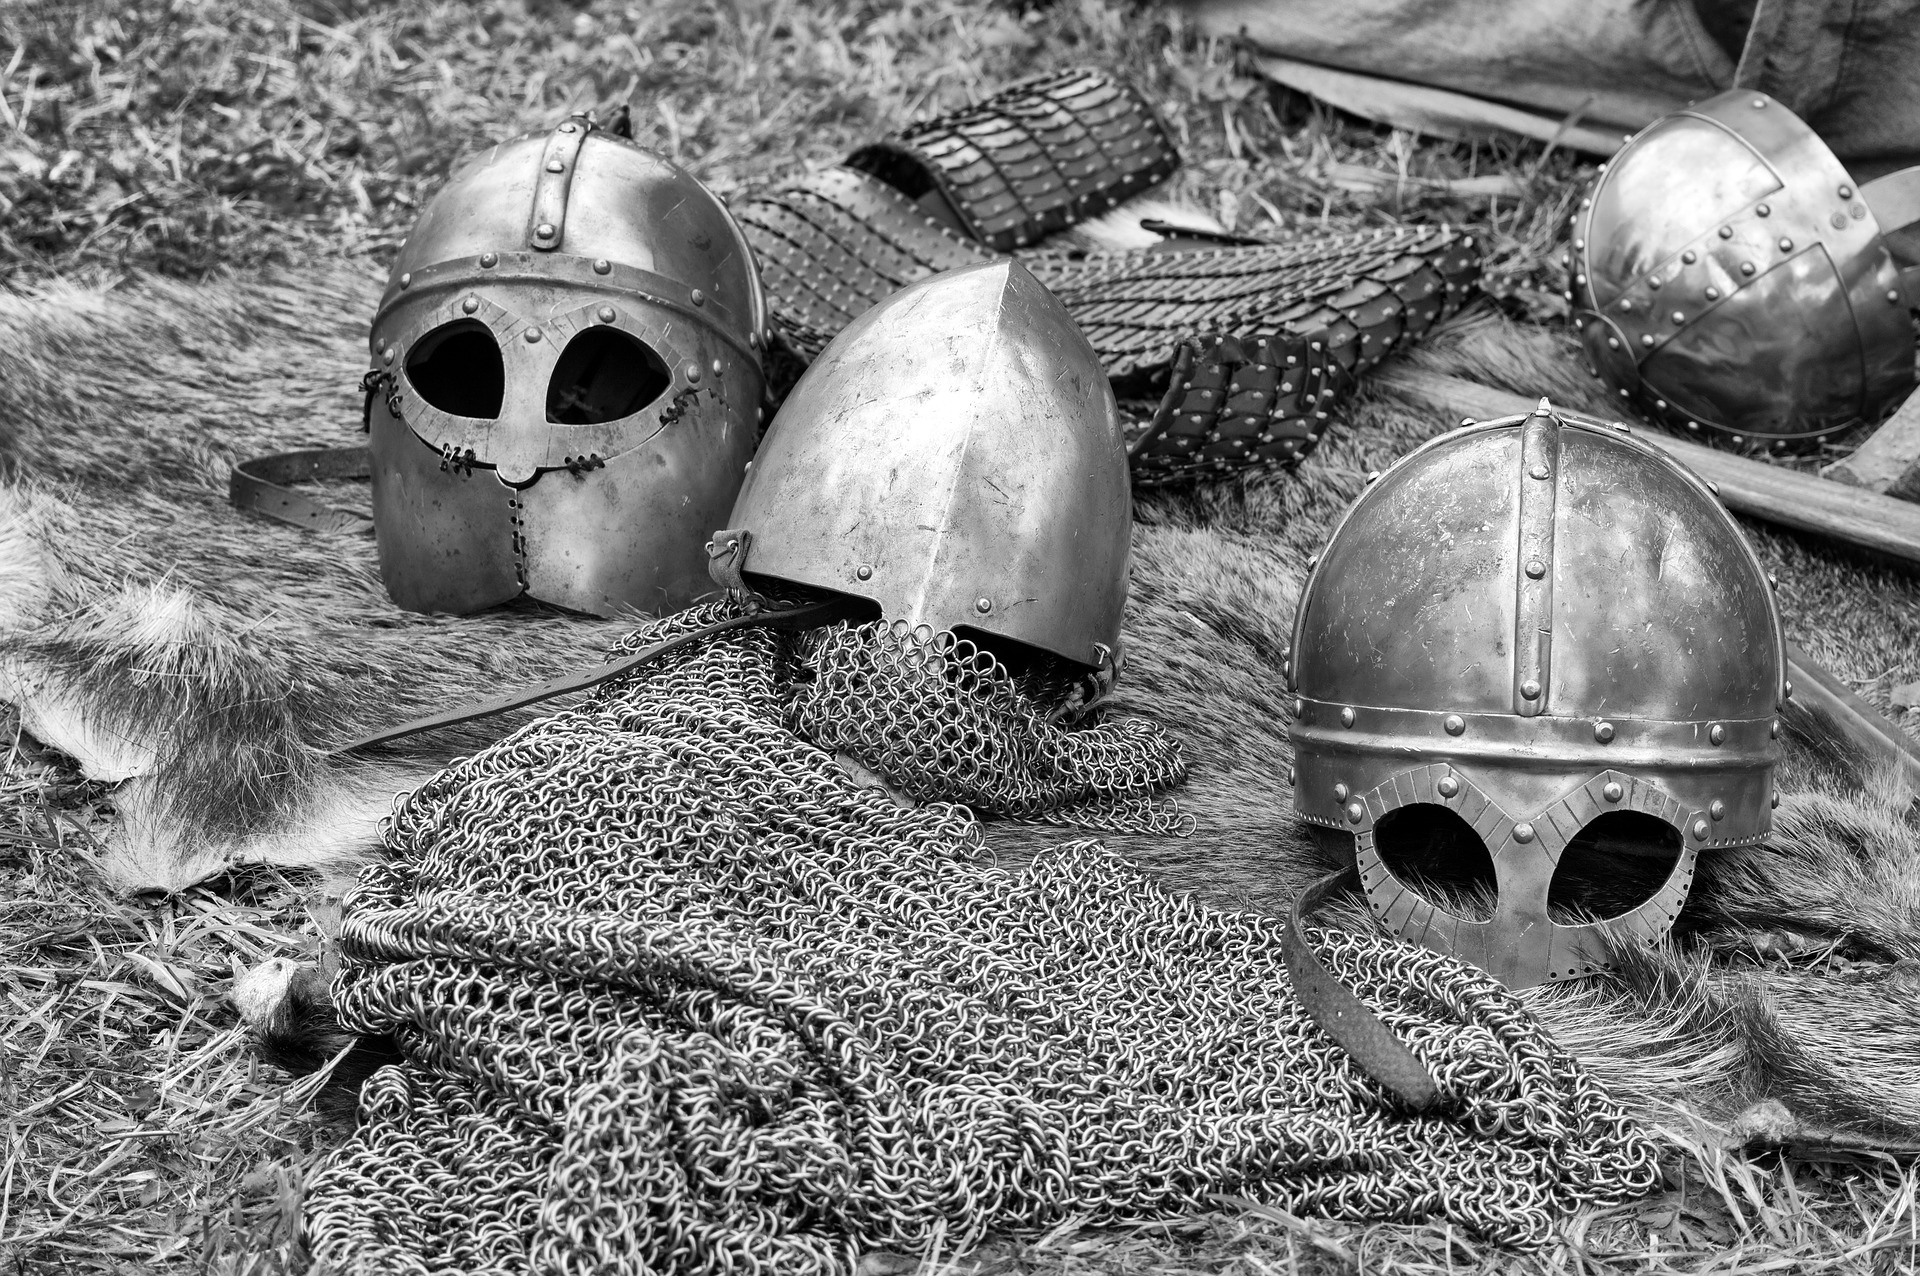 Helm and chainmail on the ground